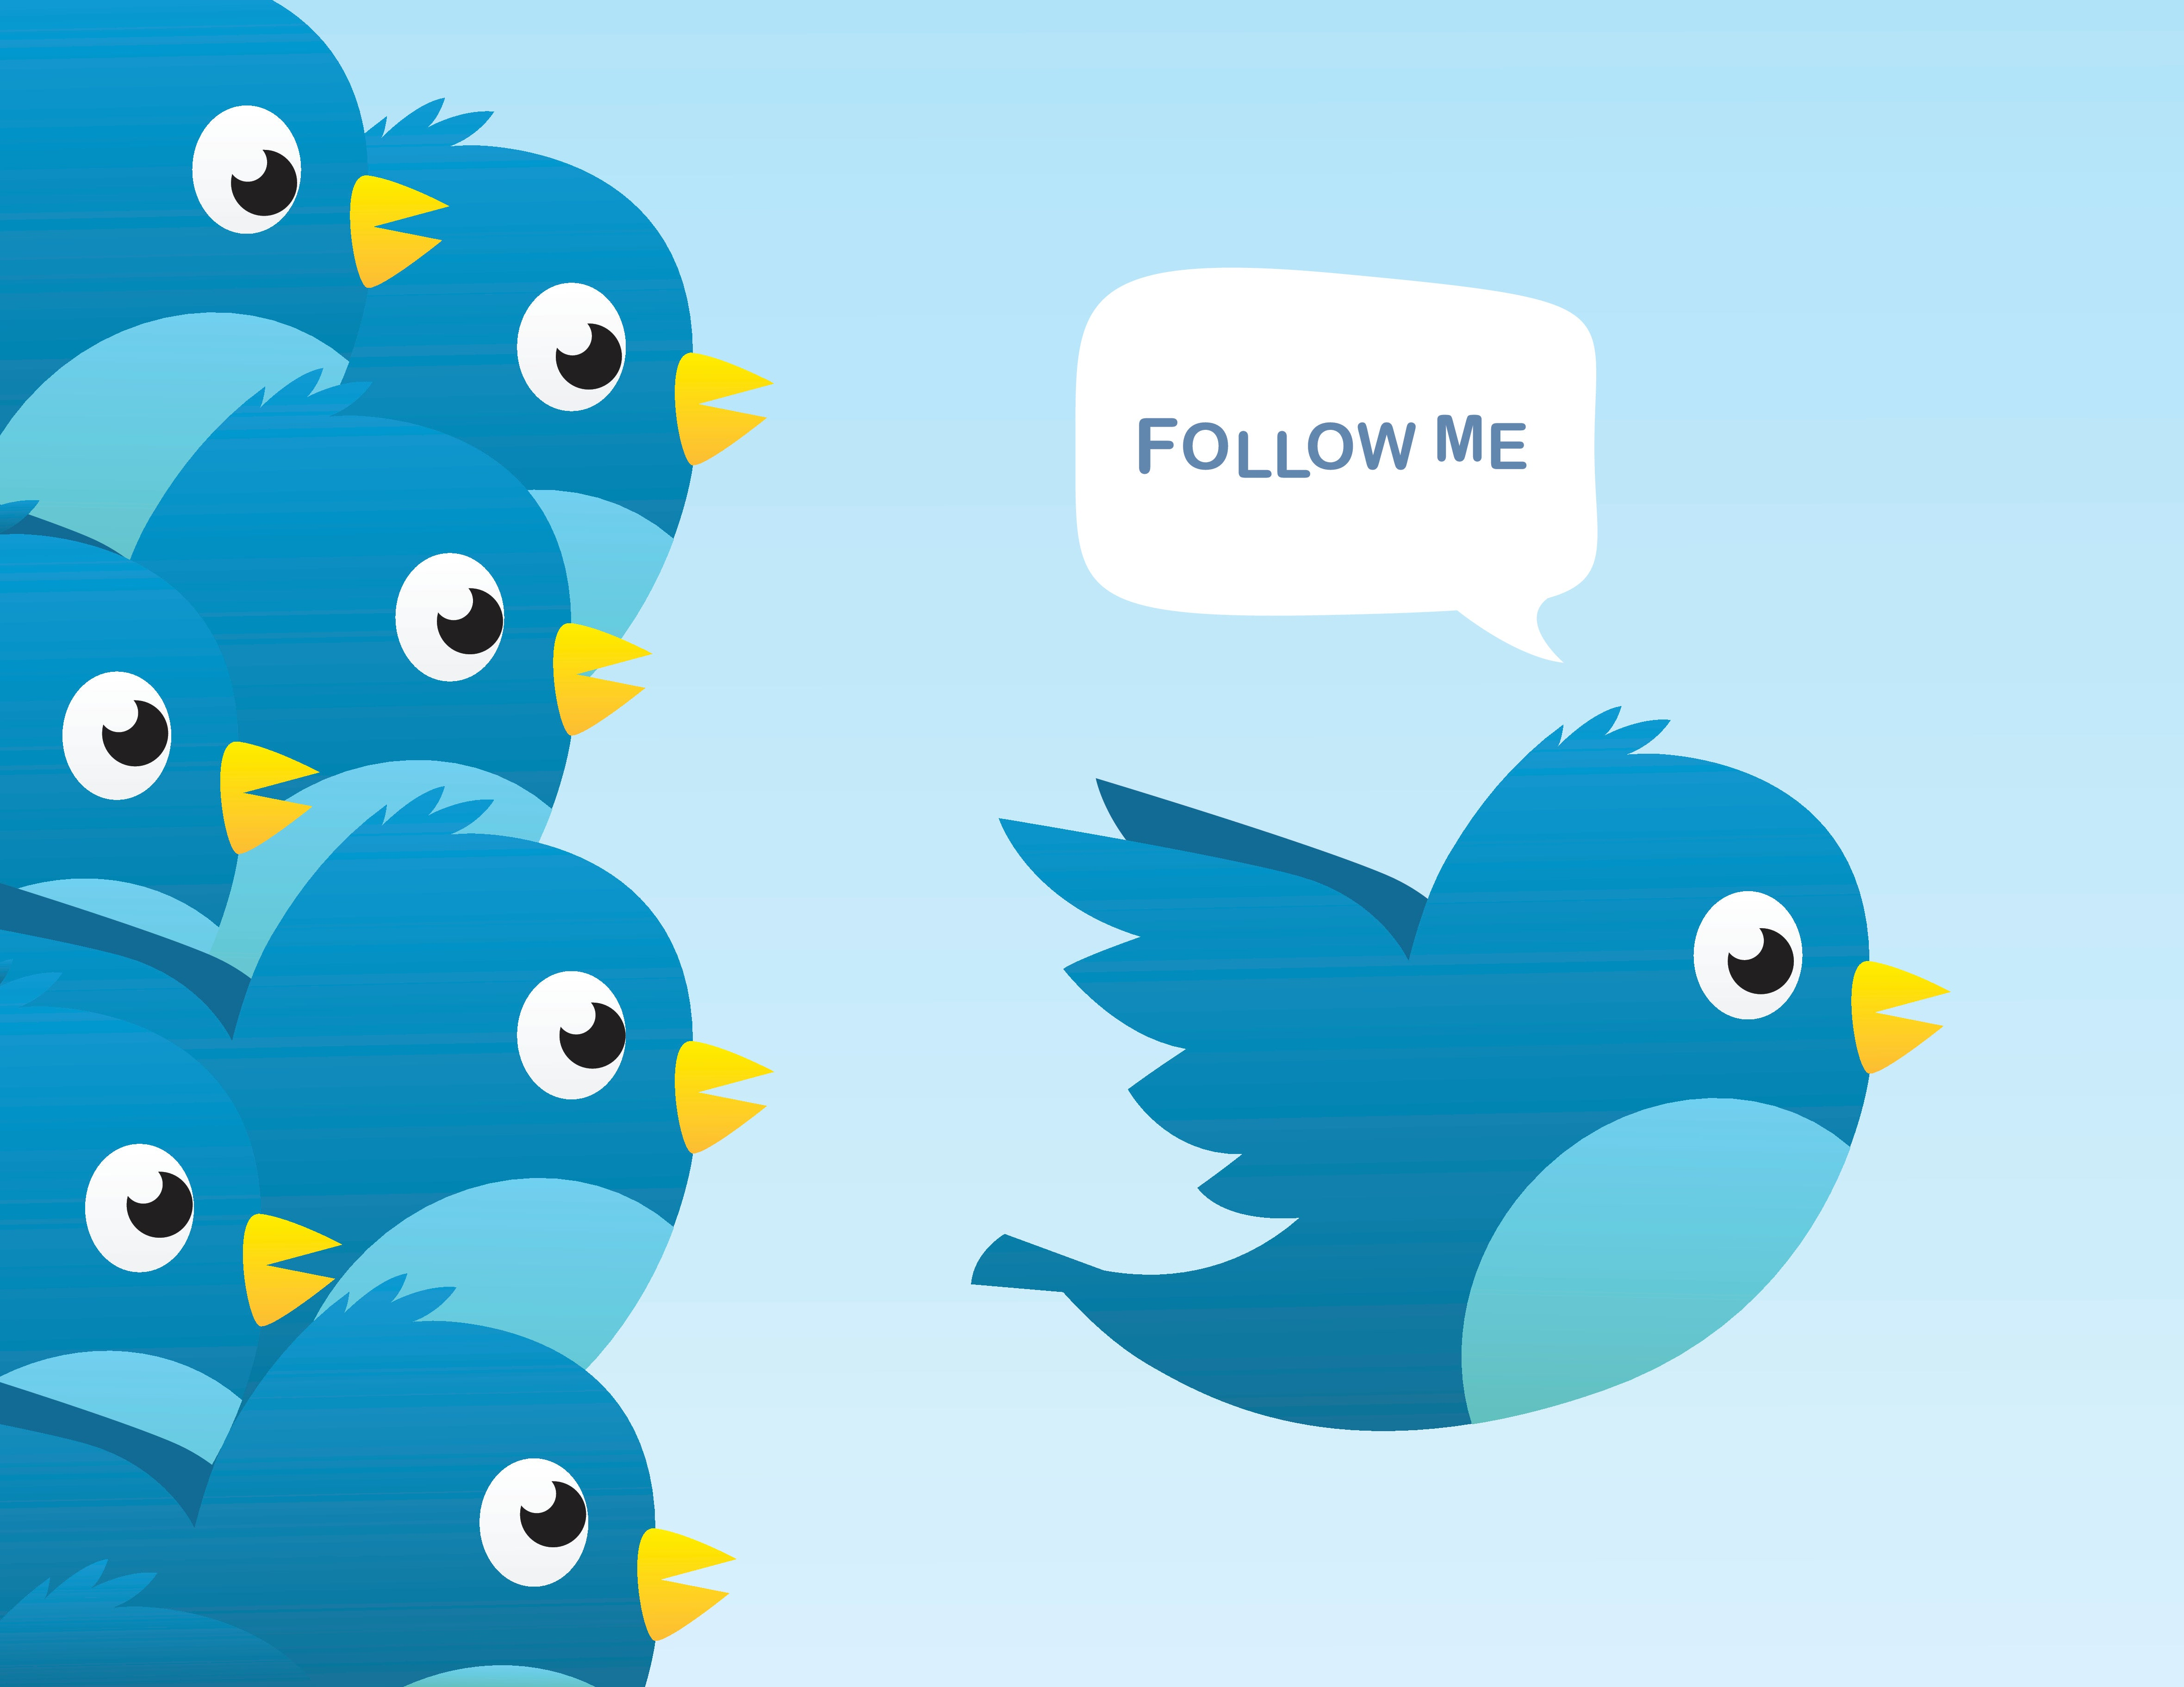 Twitter bird calls for others to follow.